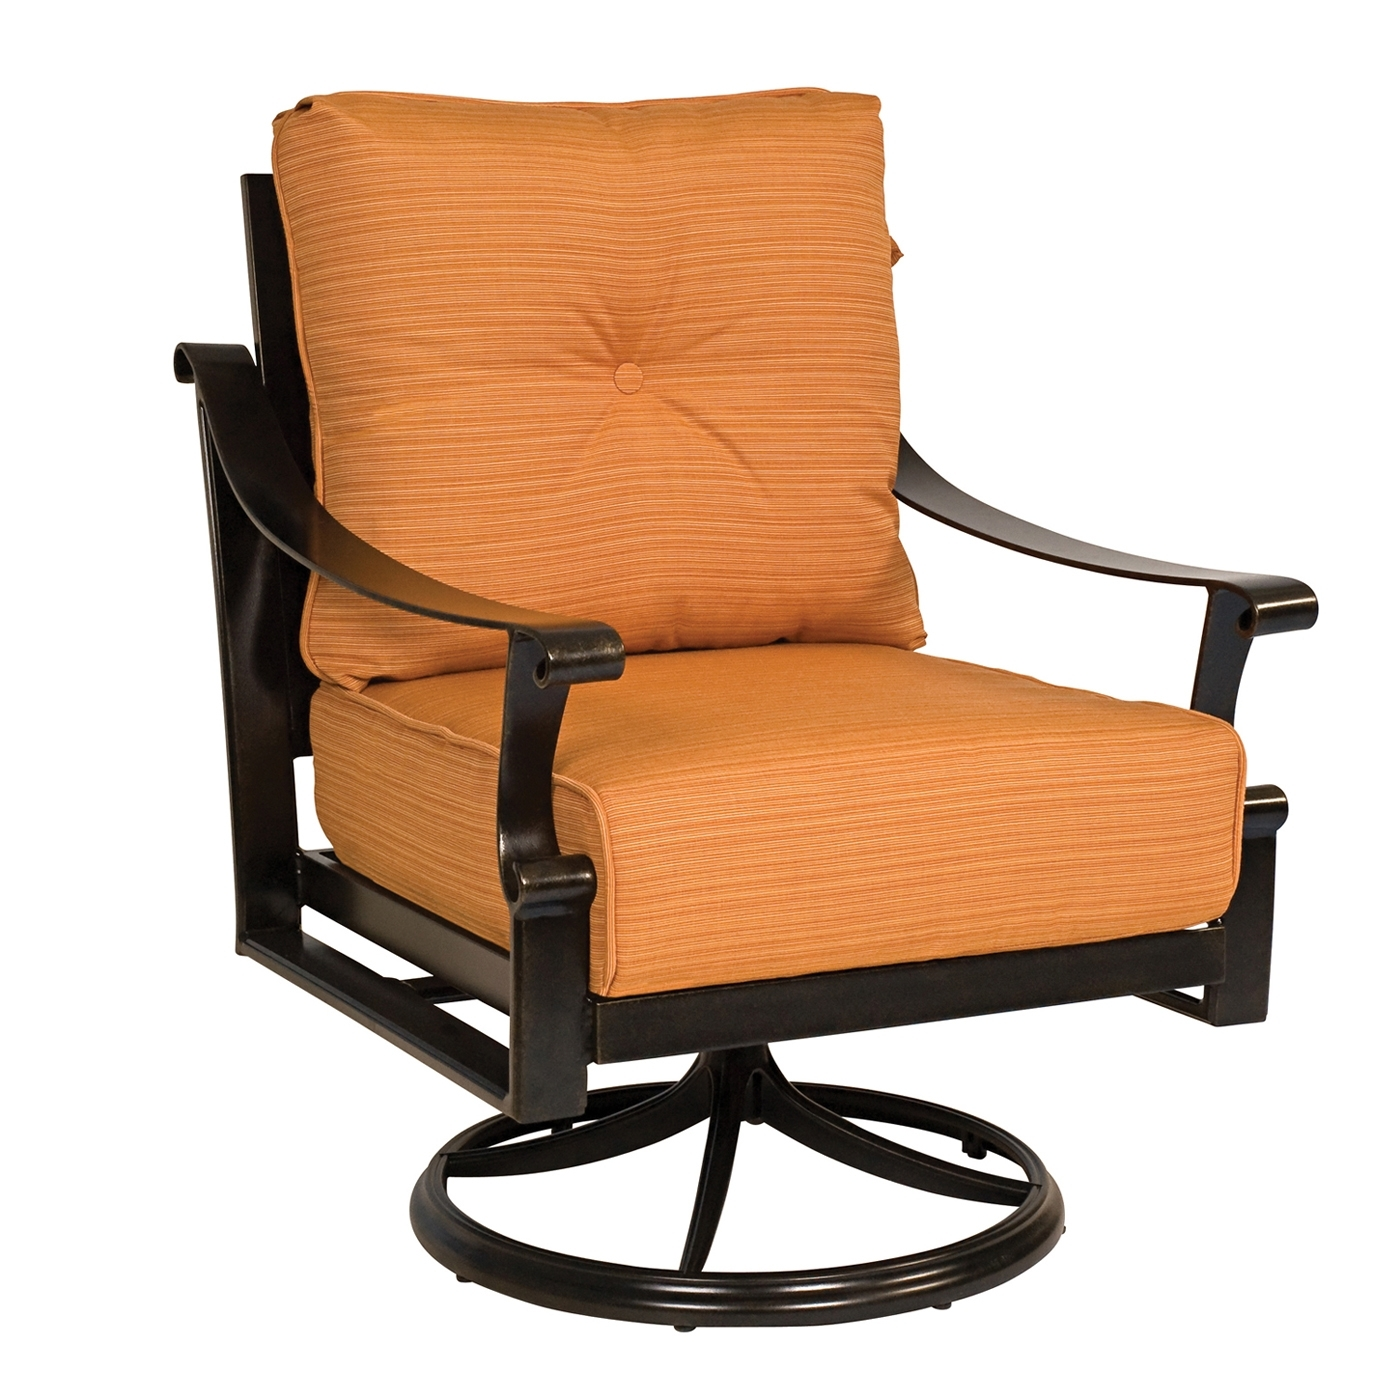 Awesome Swivel Rocker Patio Chairs Yw5Fb Mauriciohm Com Entrancing With Regard To Patio Rocking Swivel Chairs (#1 of 15)